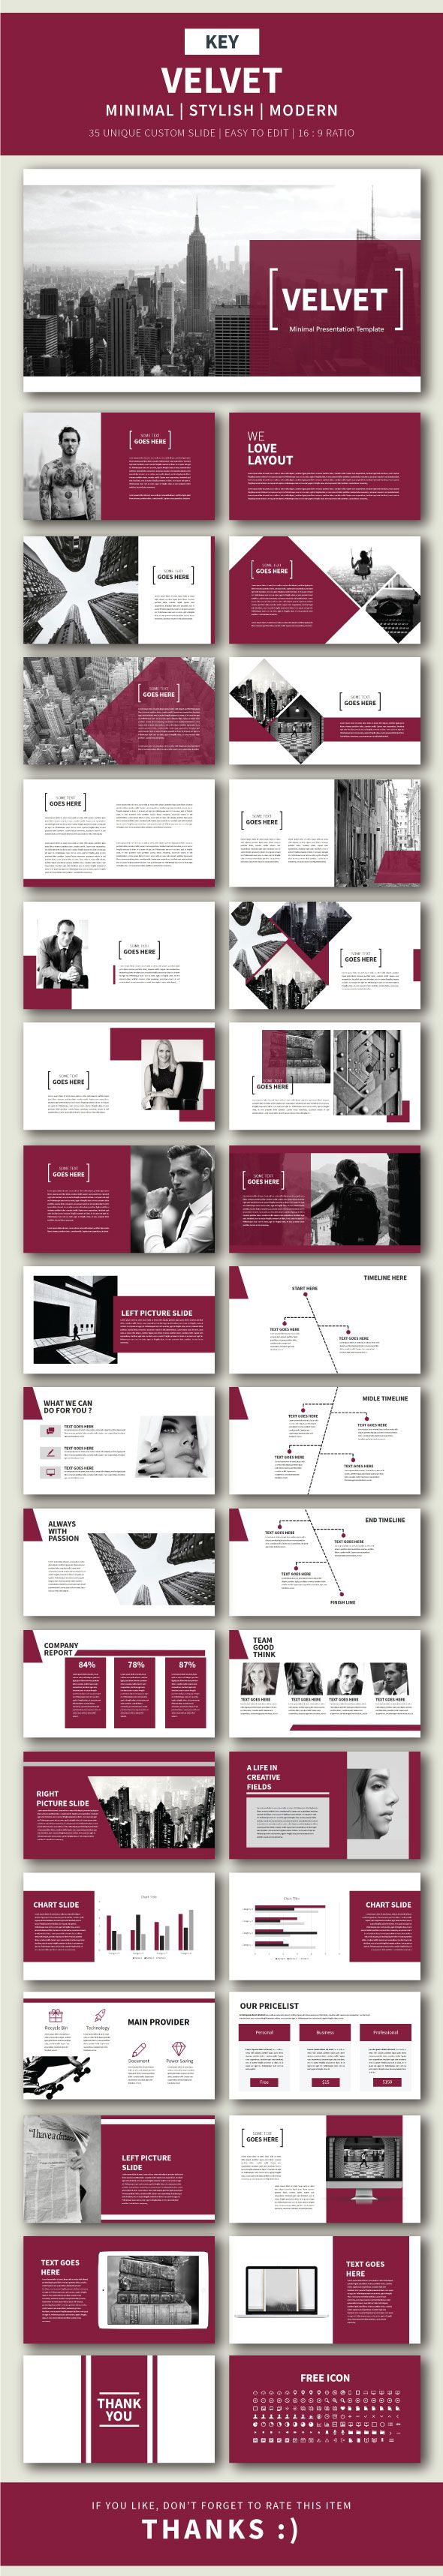 Velvet Keynote Presentation Template - Finance Keynote Templates